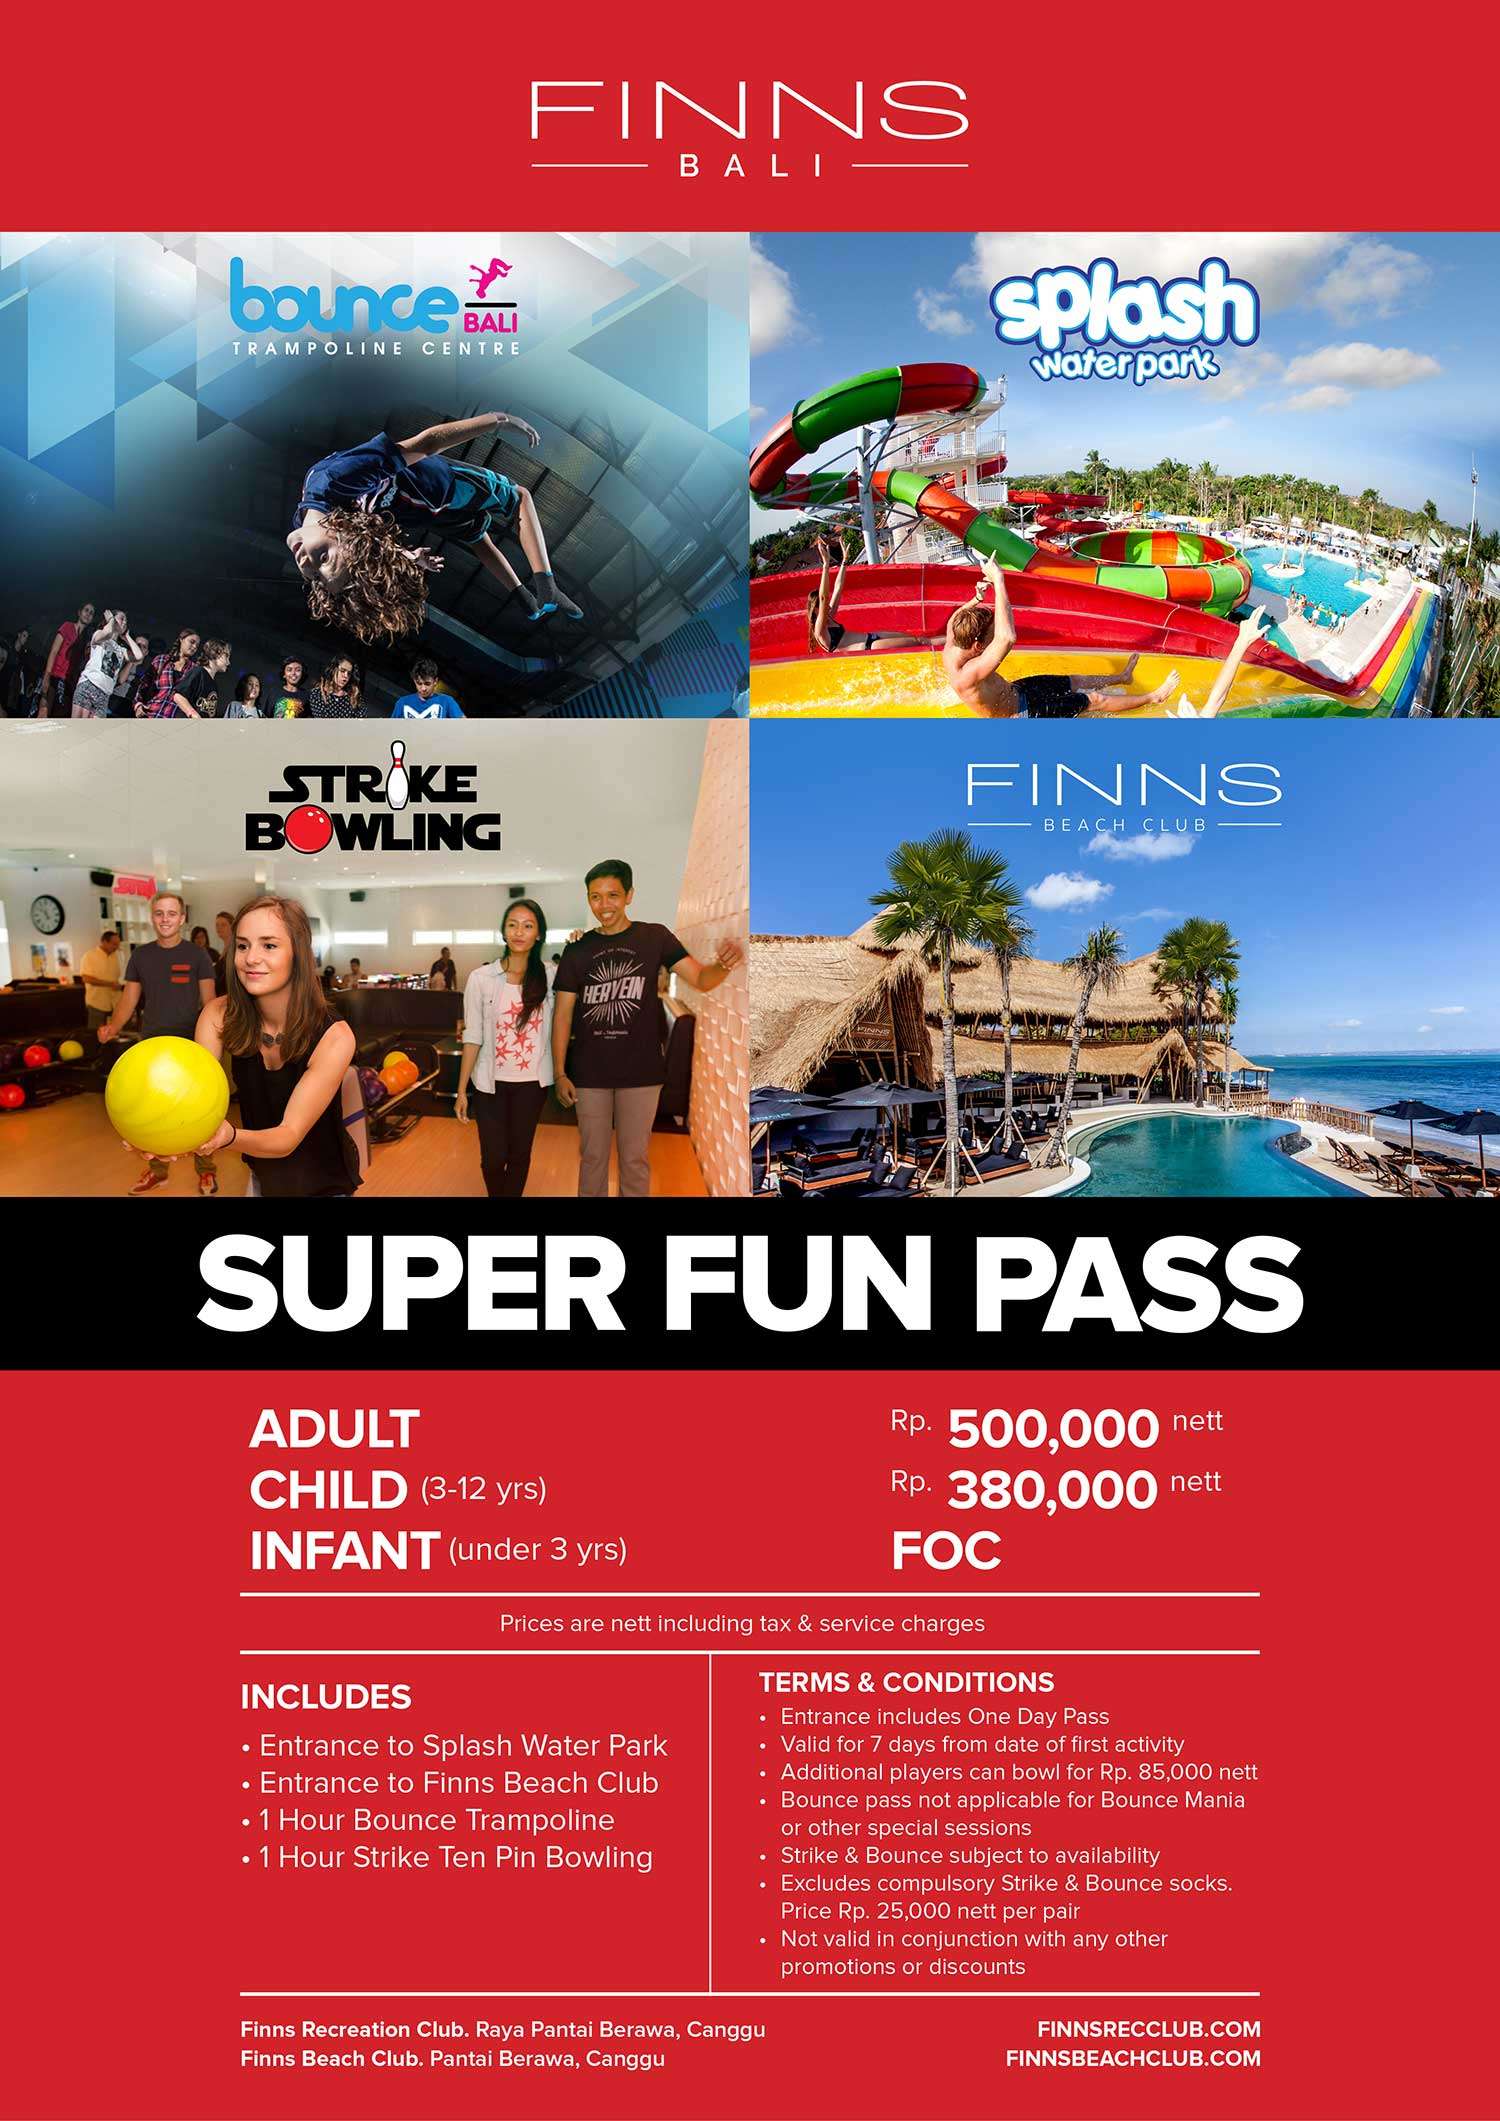 WHATSON SUPER FUN PASS